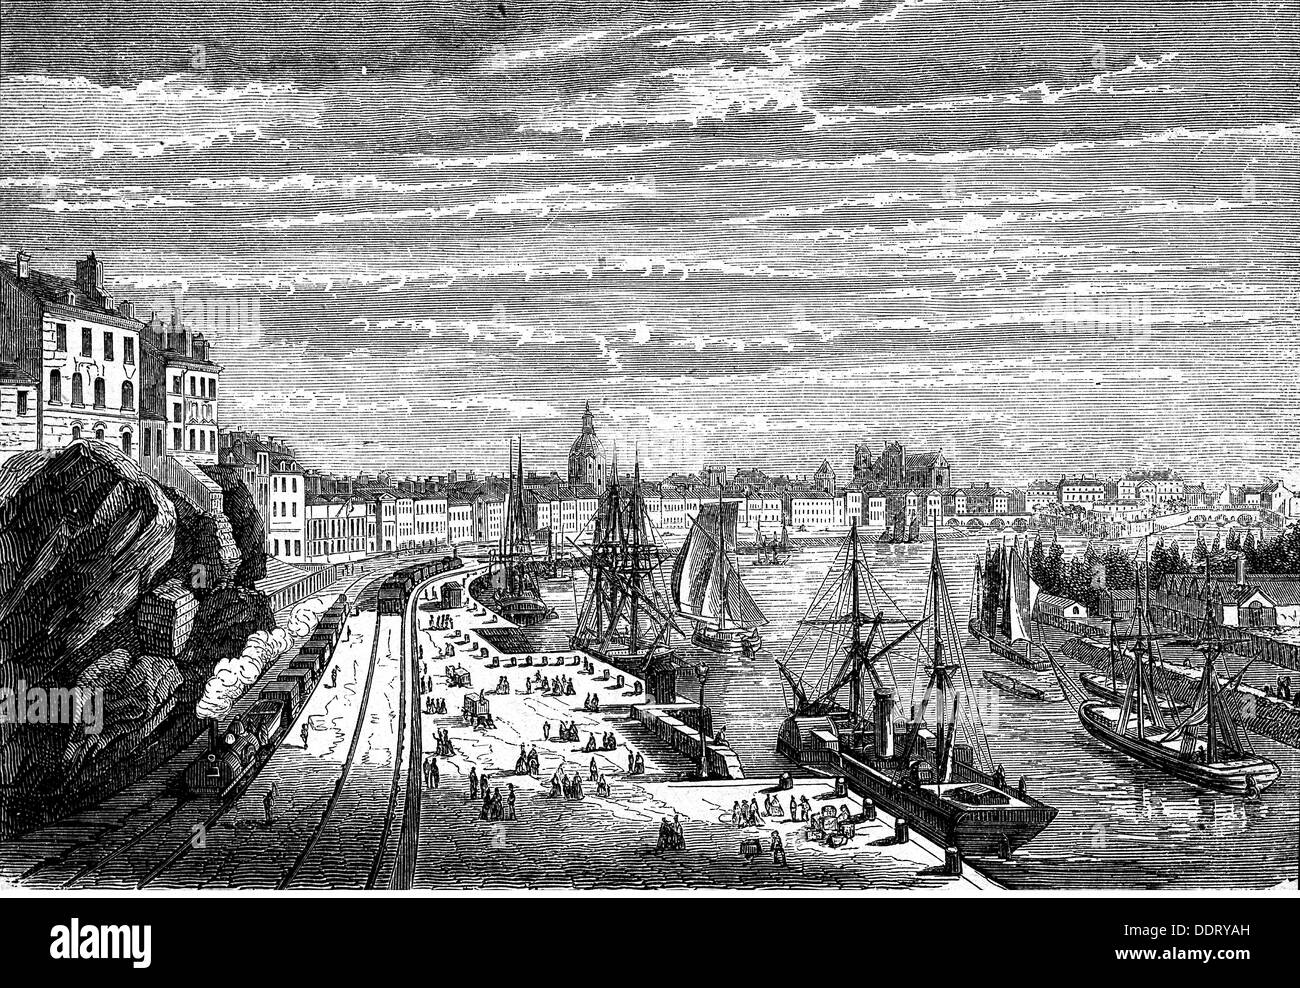 geography / travel, France, Nantes, harbour, view, wood engraving, 2nd half 19th century, city, transport, transportation, ships, ship, navigation, railway, railroad, railways, railroads, trade, river, rivers, Pays de Loire, Western Europe, harbour, harbor, harbours, harbors, port, ports, view, views, historic, historical, people, Additional-Rights-Clearences-NA - Stock Image